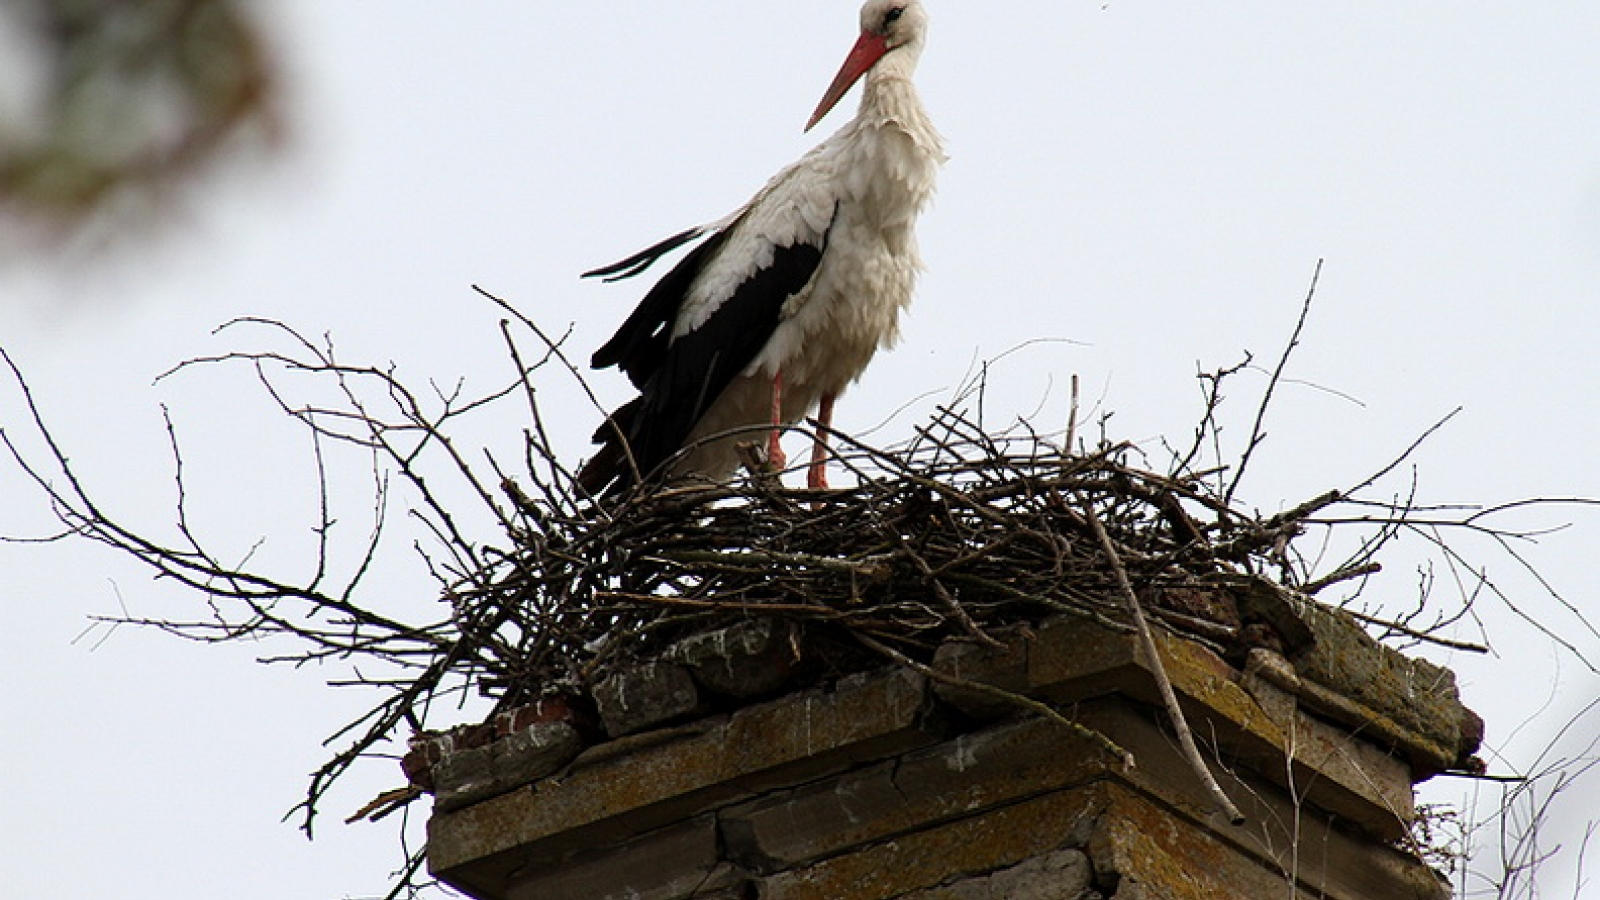 Stork in a nest. Ternopil Region of Ukraine, Okopy village. (Credit: Roman Malko)